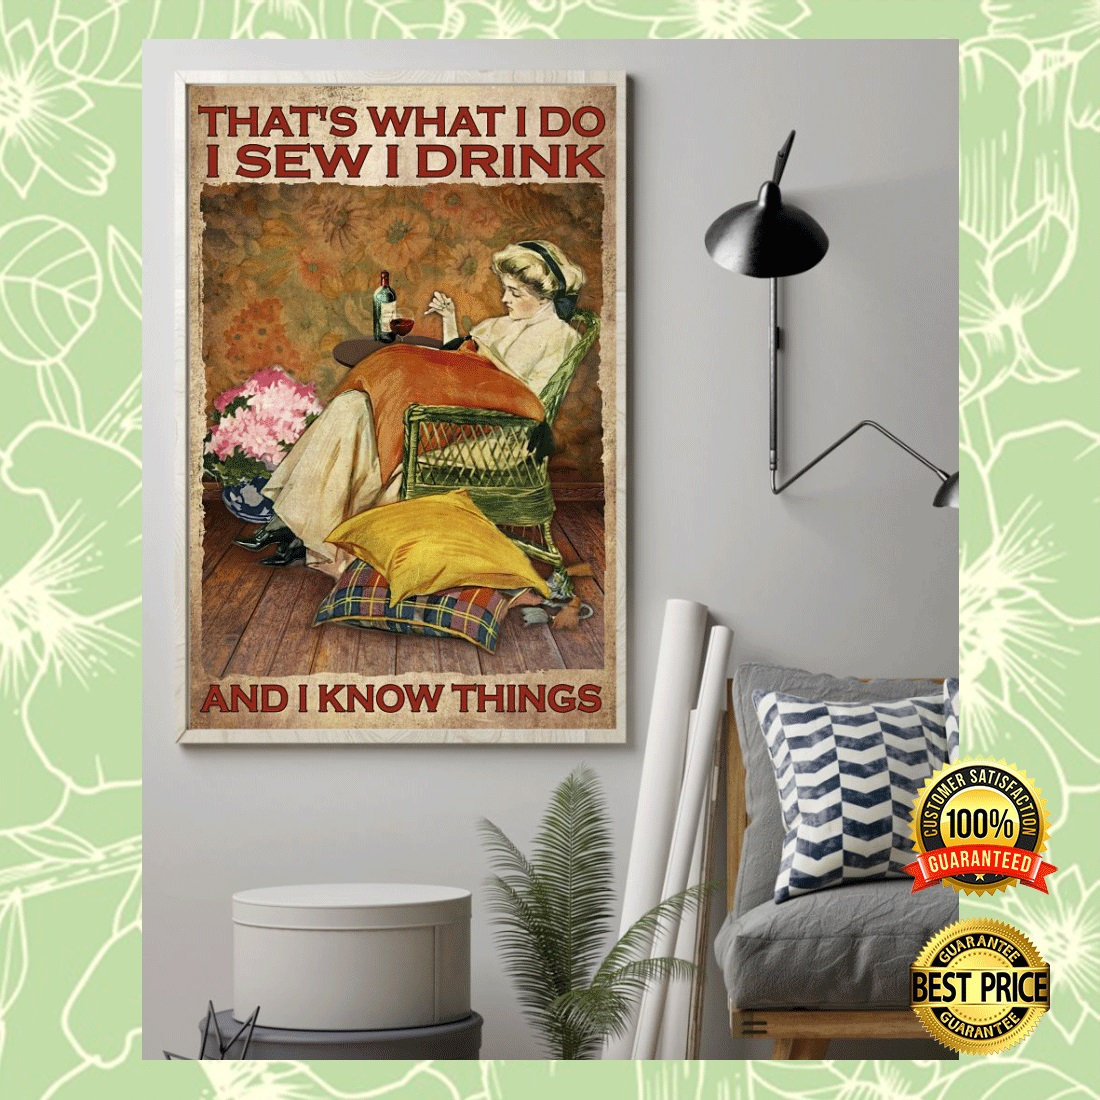 THAT'S WHAT I DO I SEW I DRINK AND I KNOW THINGS POSTER 7